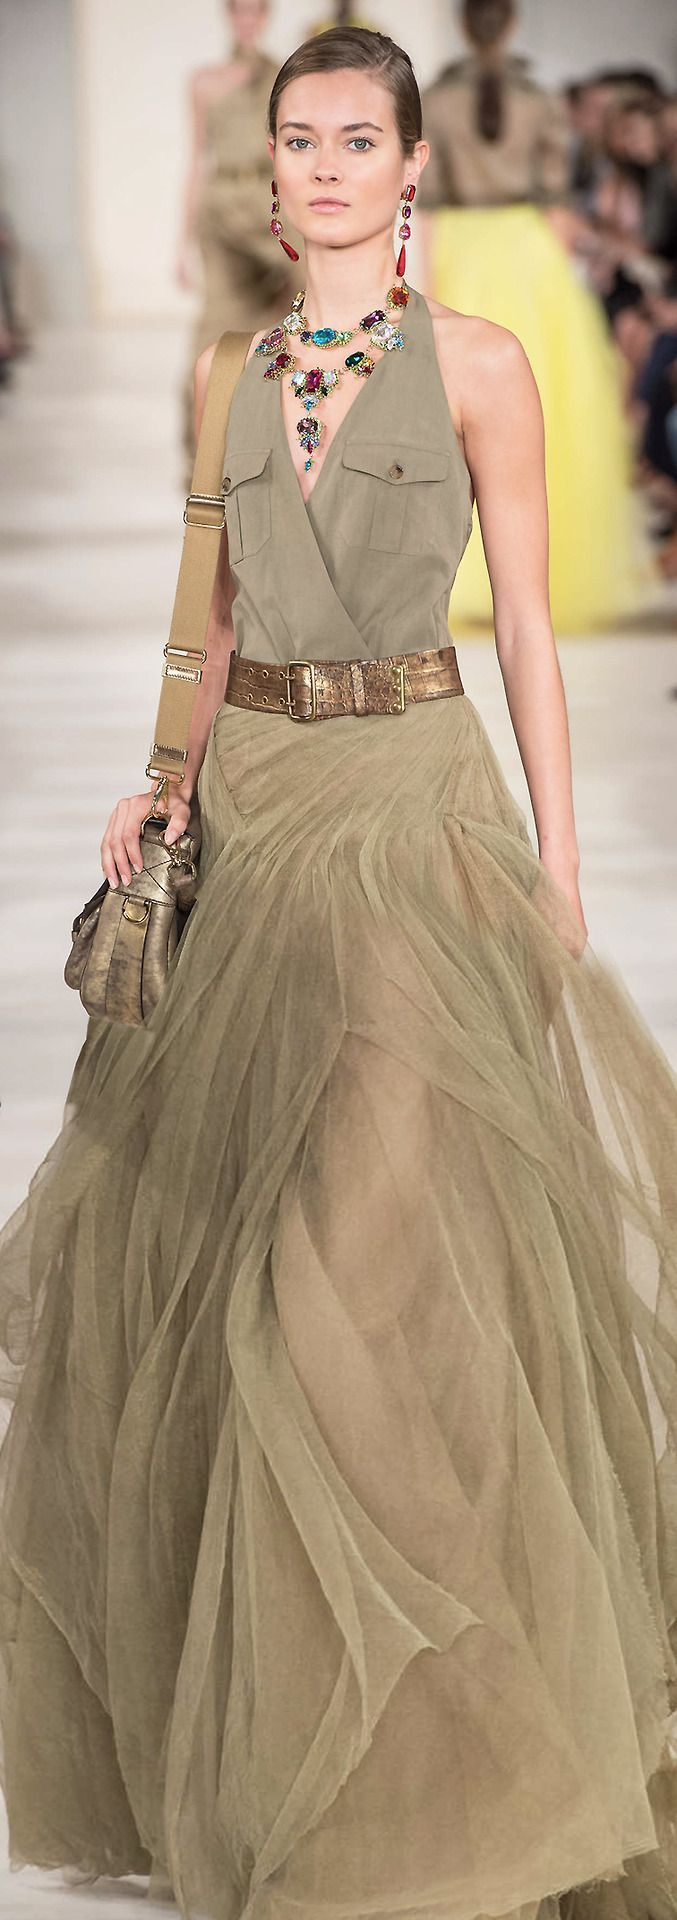 Serious necklace layering!!  Ralph Lauren ss 2015 http://hermansfashion.wordpress.com/